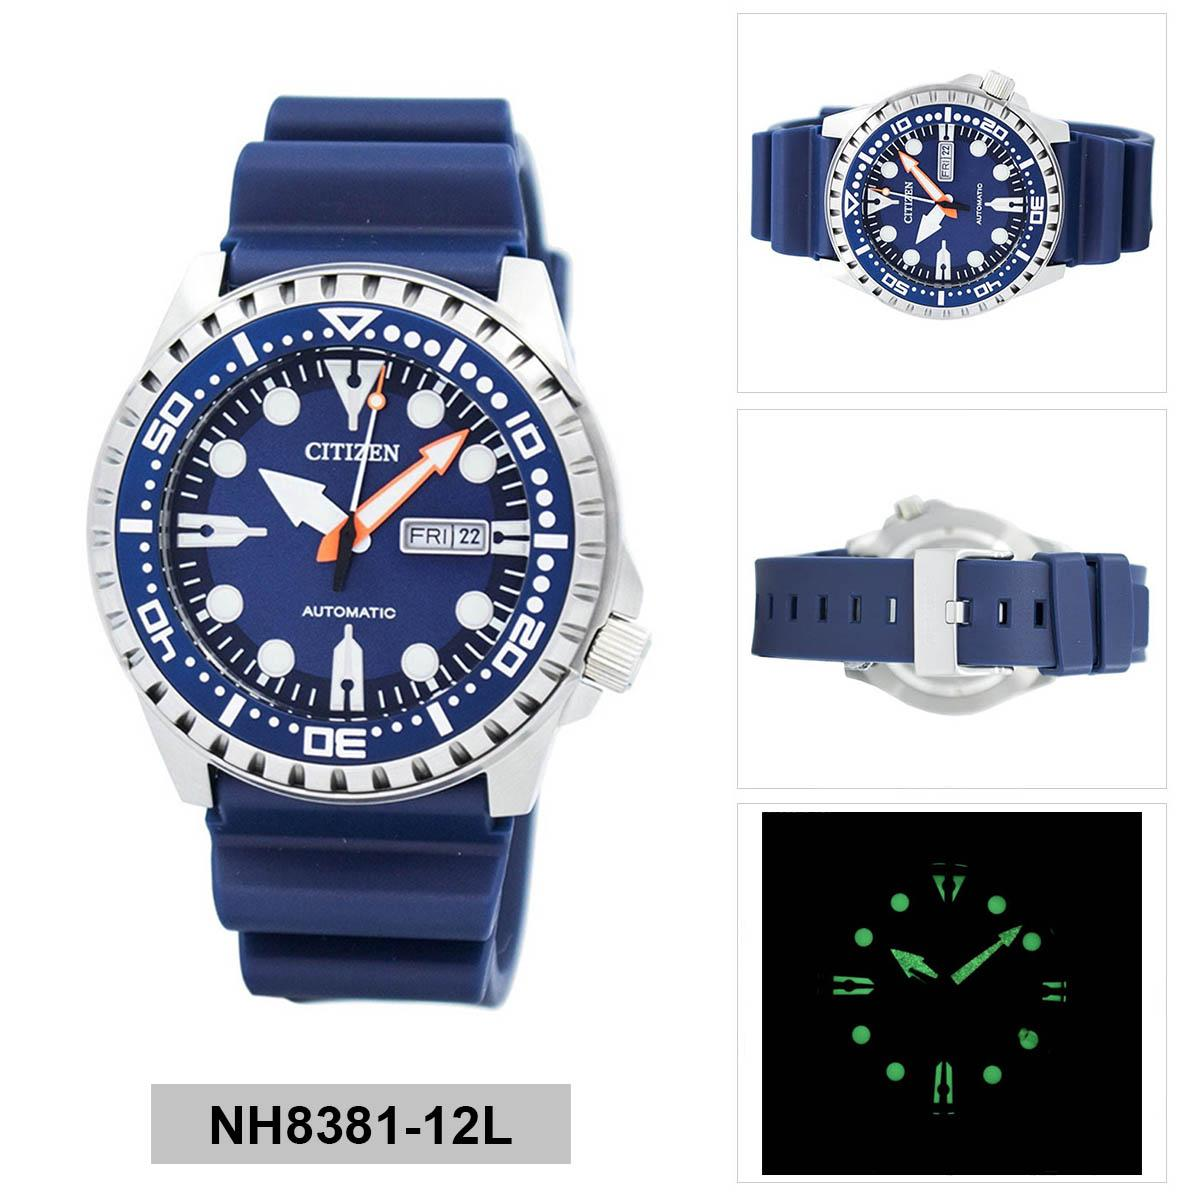 Kelebihan Citizen Ca4157 09e Stainless Steel Mens Watch Terkini Nh8388 81e Mechanical Blue Case Rubber Strap Nwt Warranty Nh8381